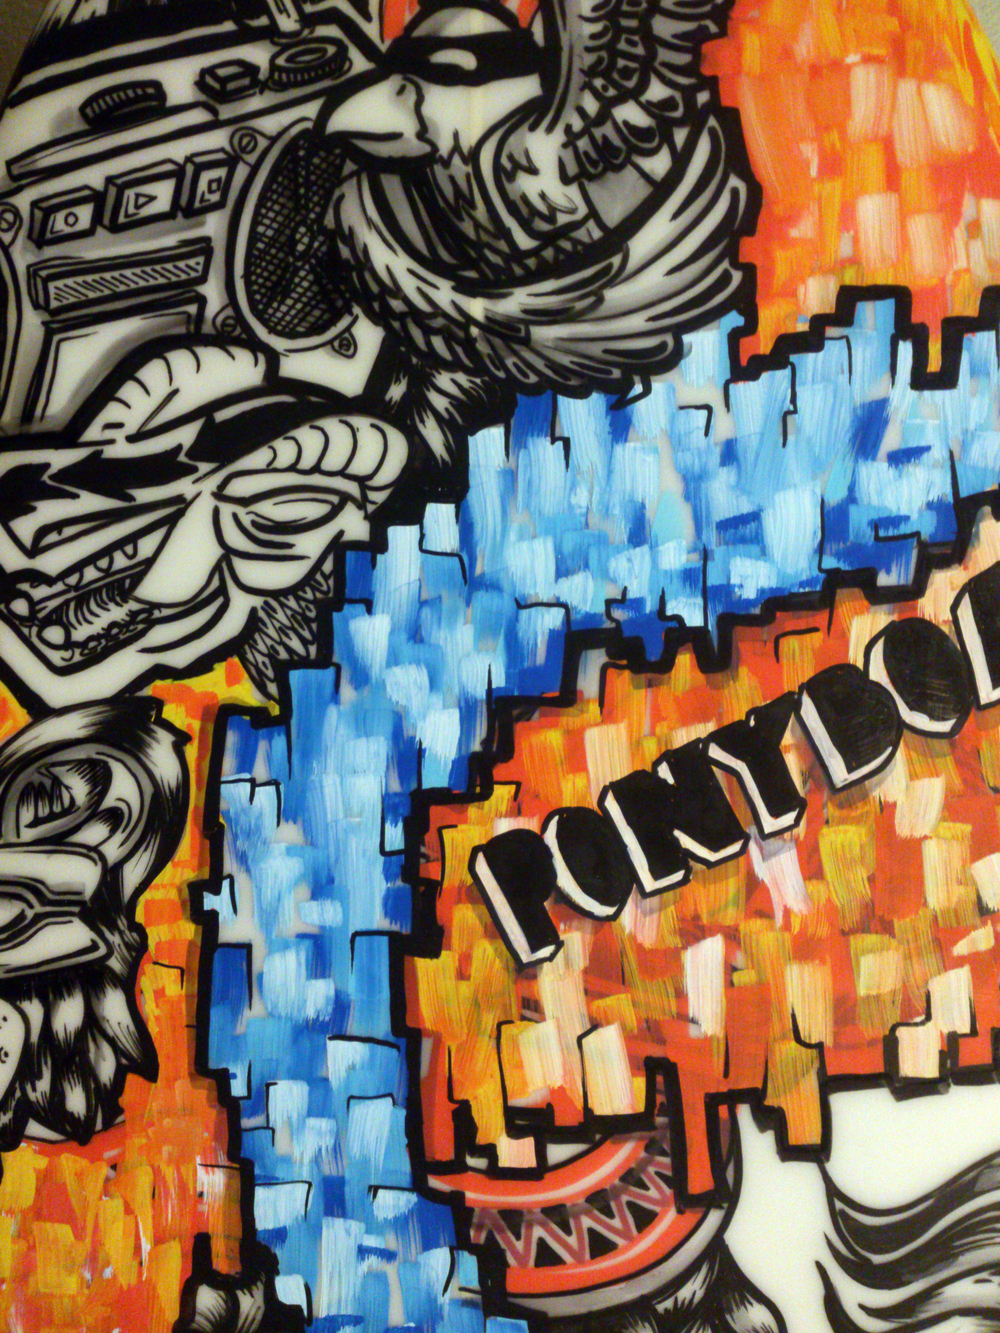 close-up-texture-paint-orange-blue-surfboard-handmade-handpainted-posca-sydney-illustrator-samshennan-sam-shennan-ud3.jpg